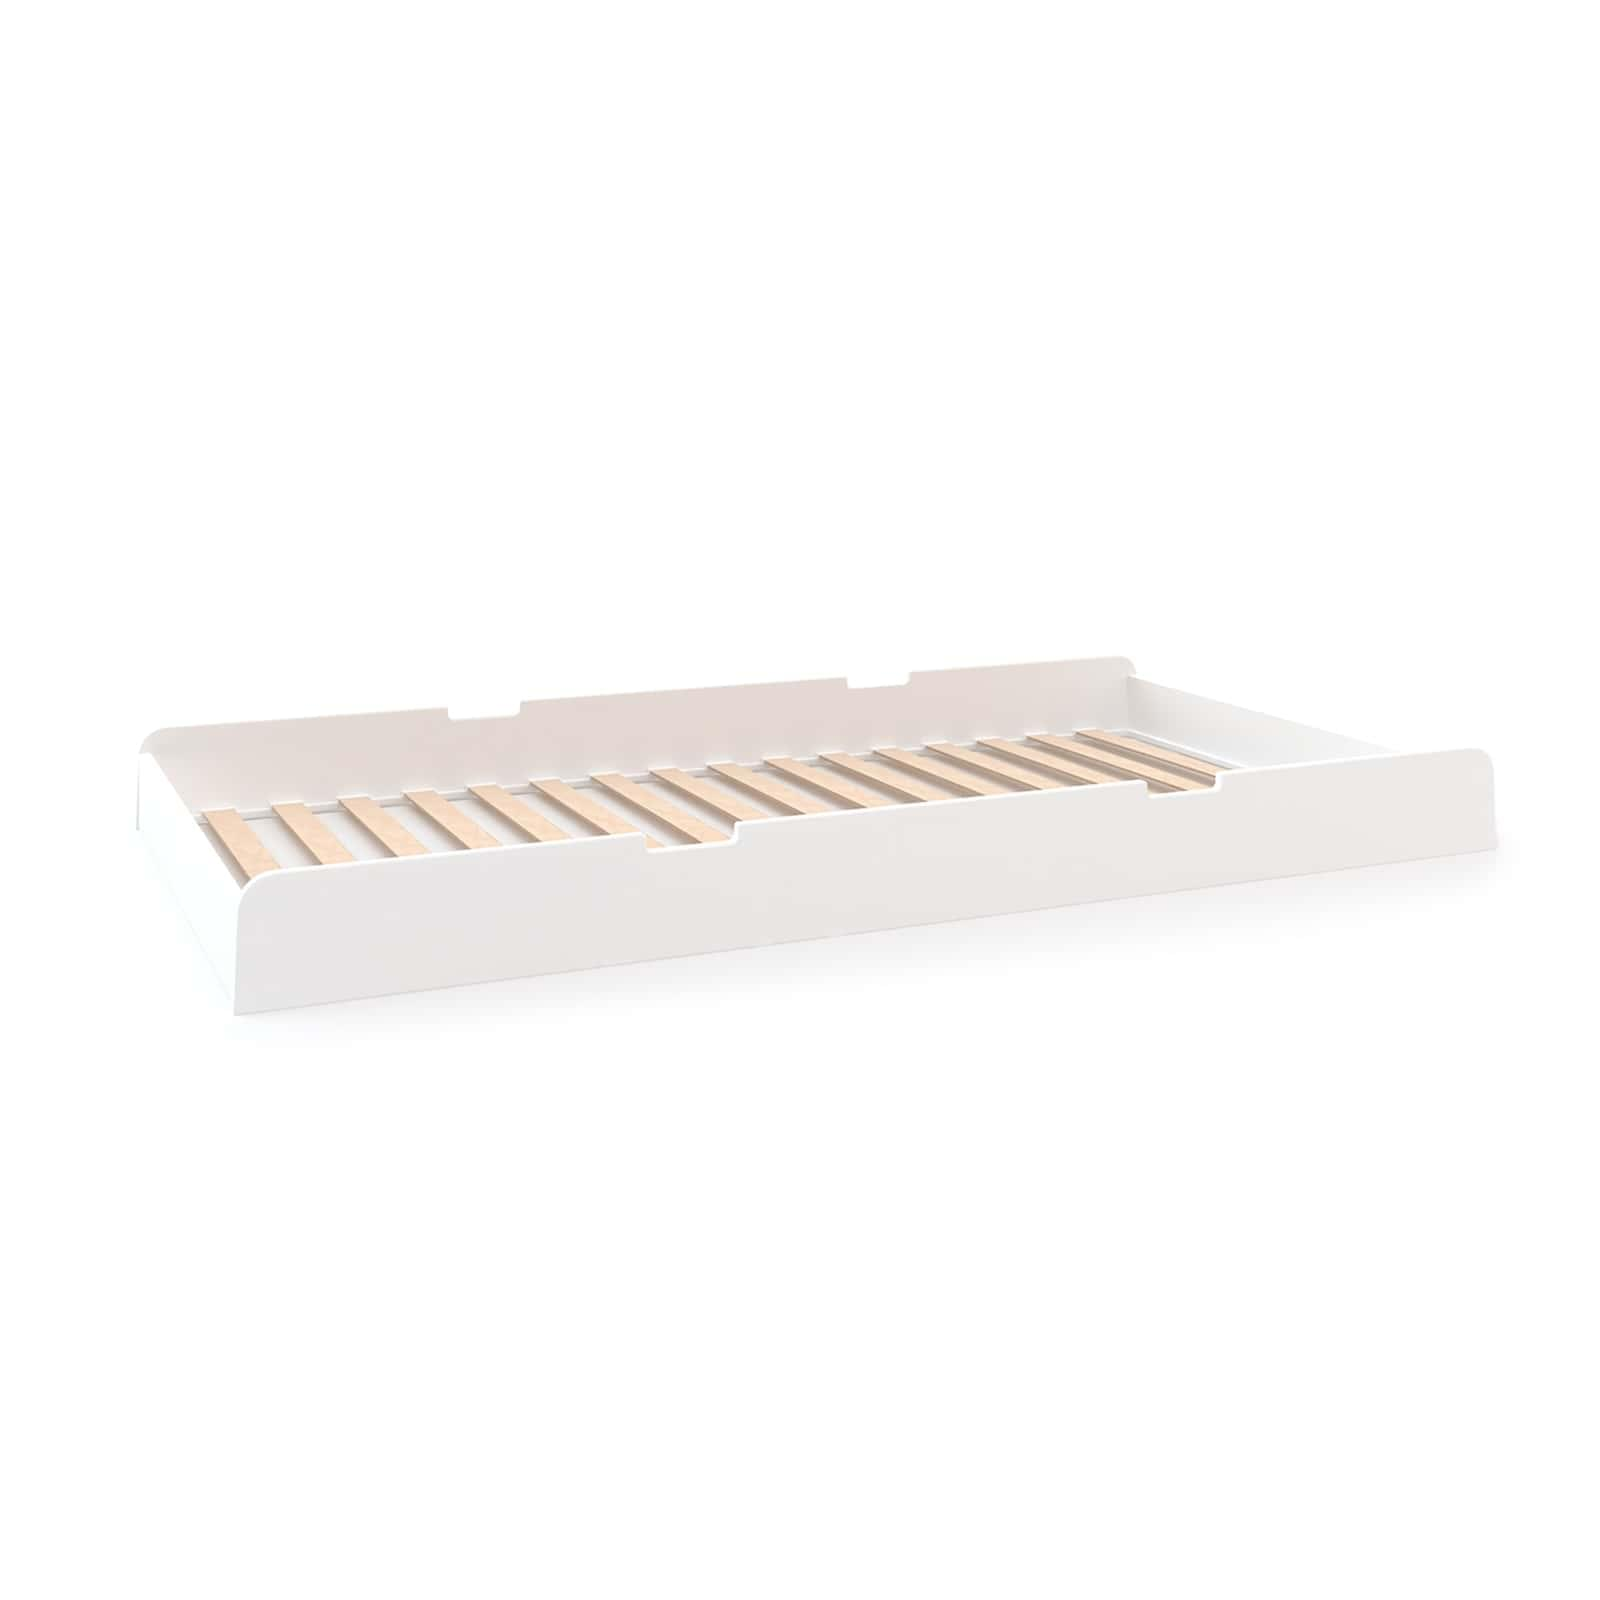 Buy oeuf river trundle bed white online retrojan for Jungle furniture white river